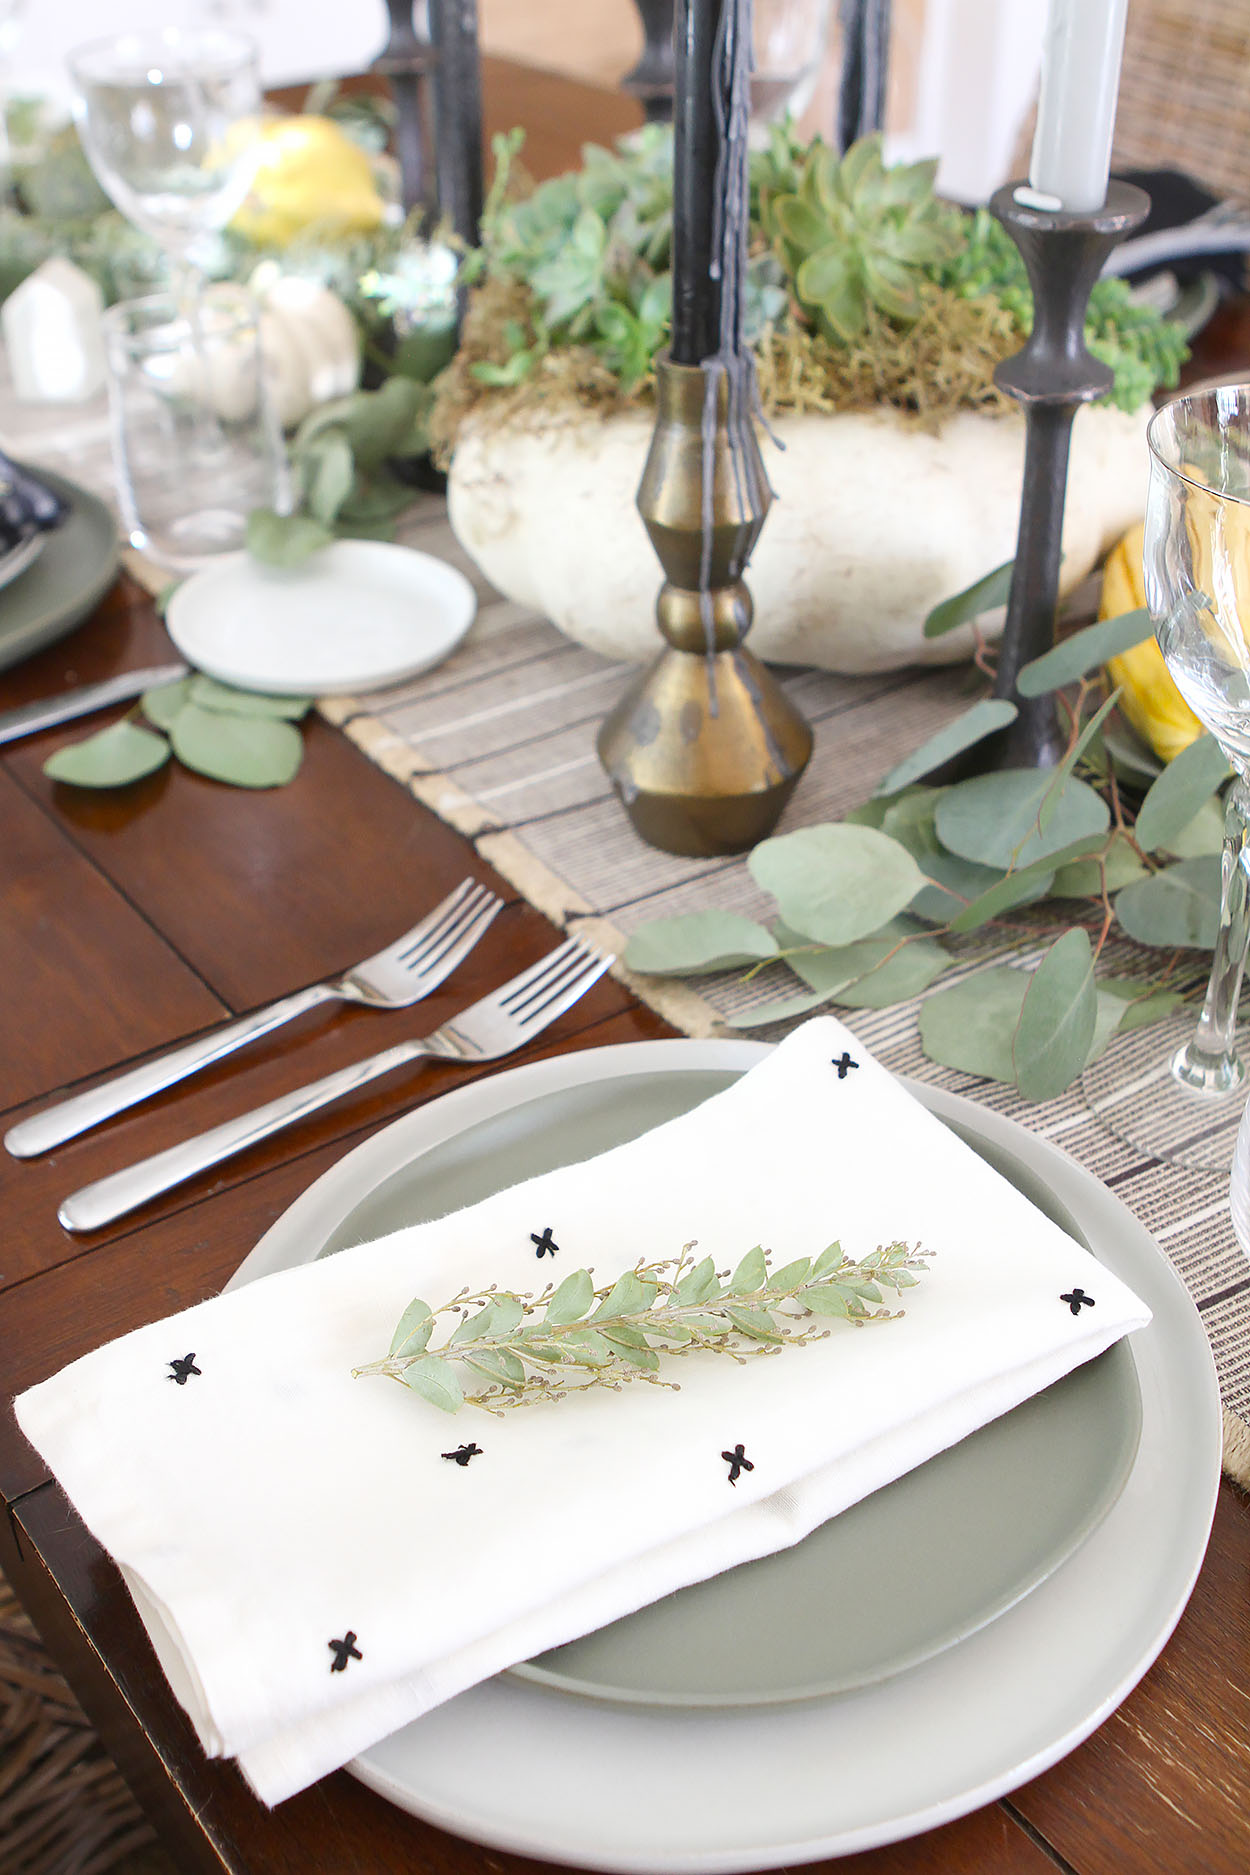 a place setting with two gray plates, a napkin with black cross stitches and two forks